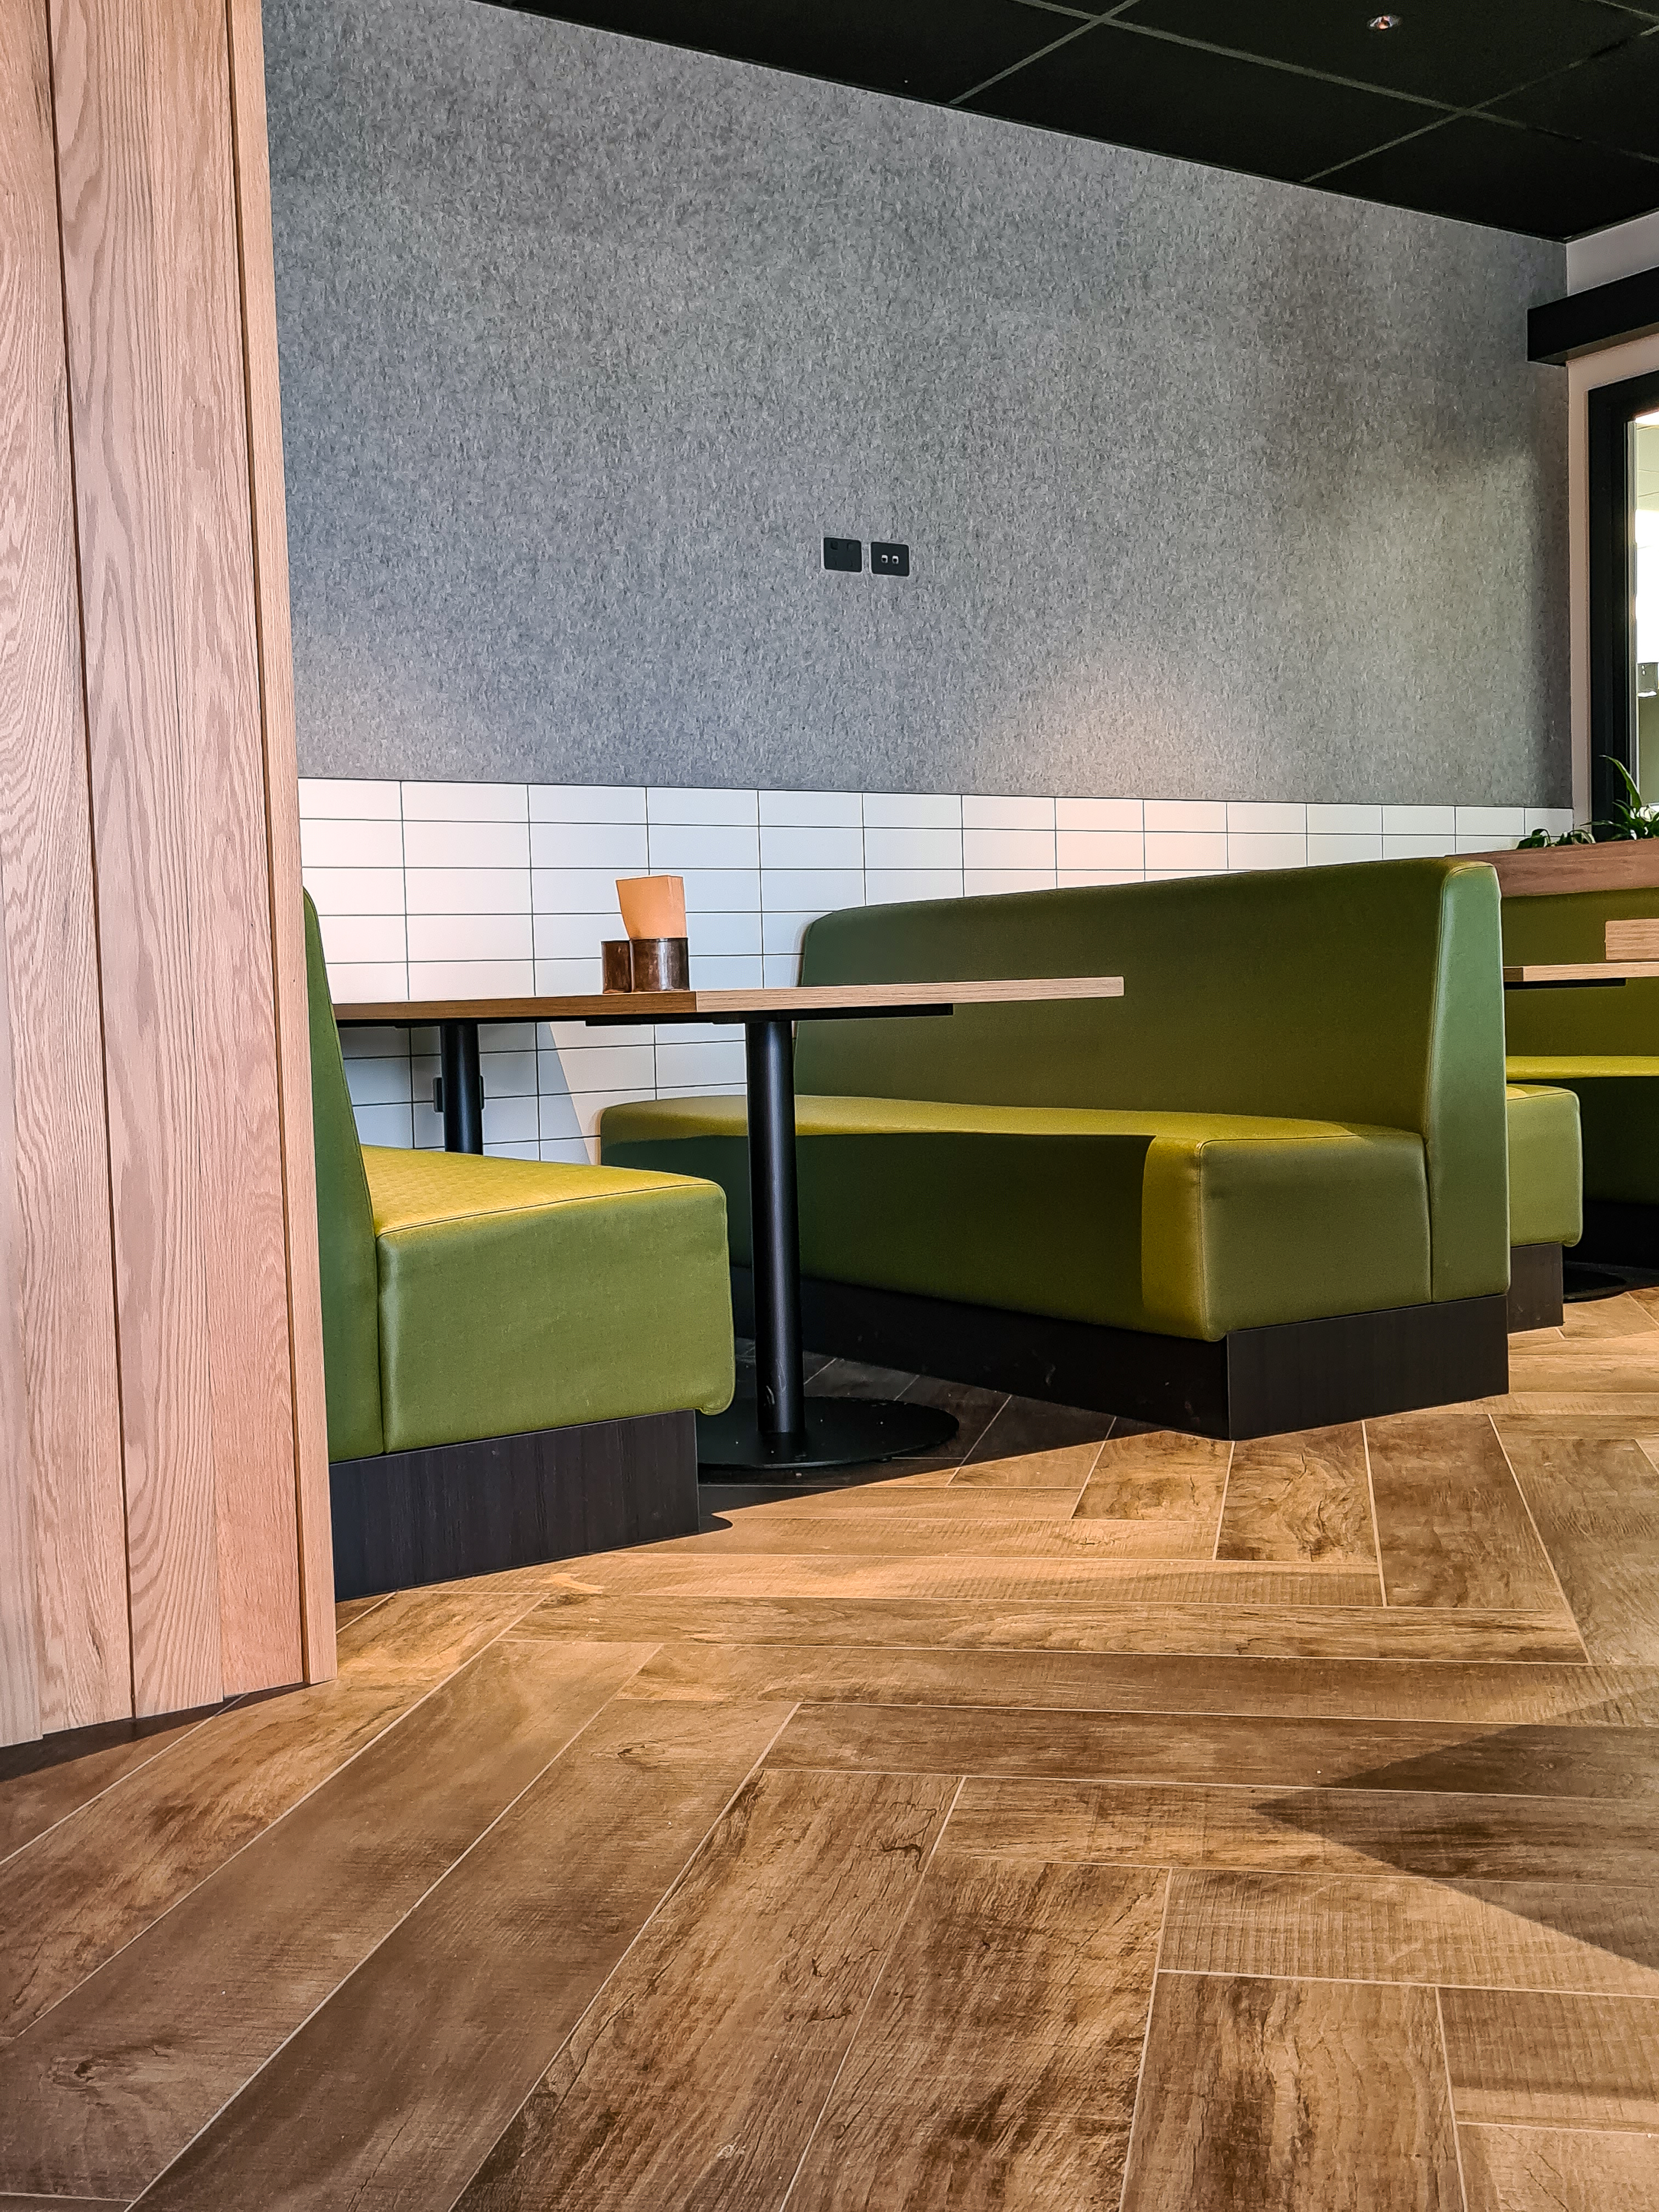 Lunchroom: Woodlands Grey Tiles with White wall matt 100x300 tiles on the wall. This space also featured the acoufelt solid panels metal on the wall.